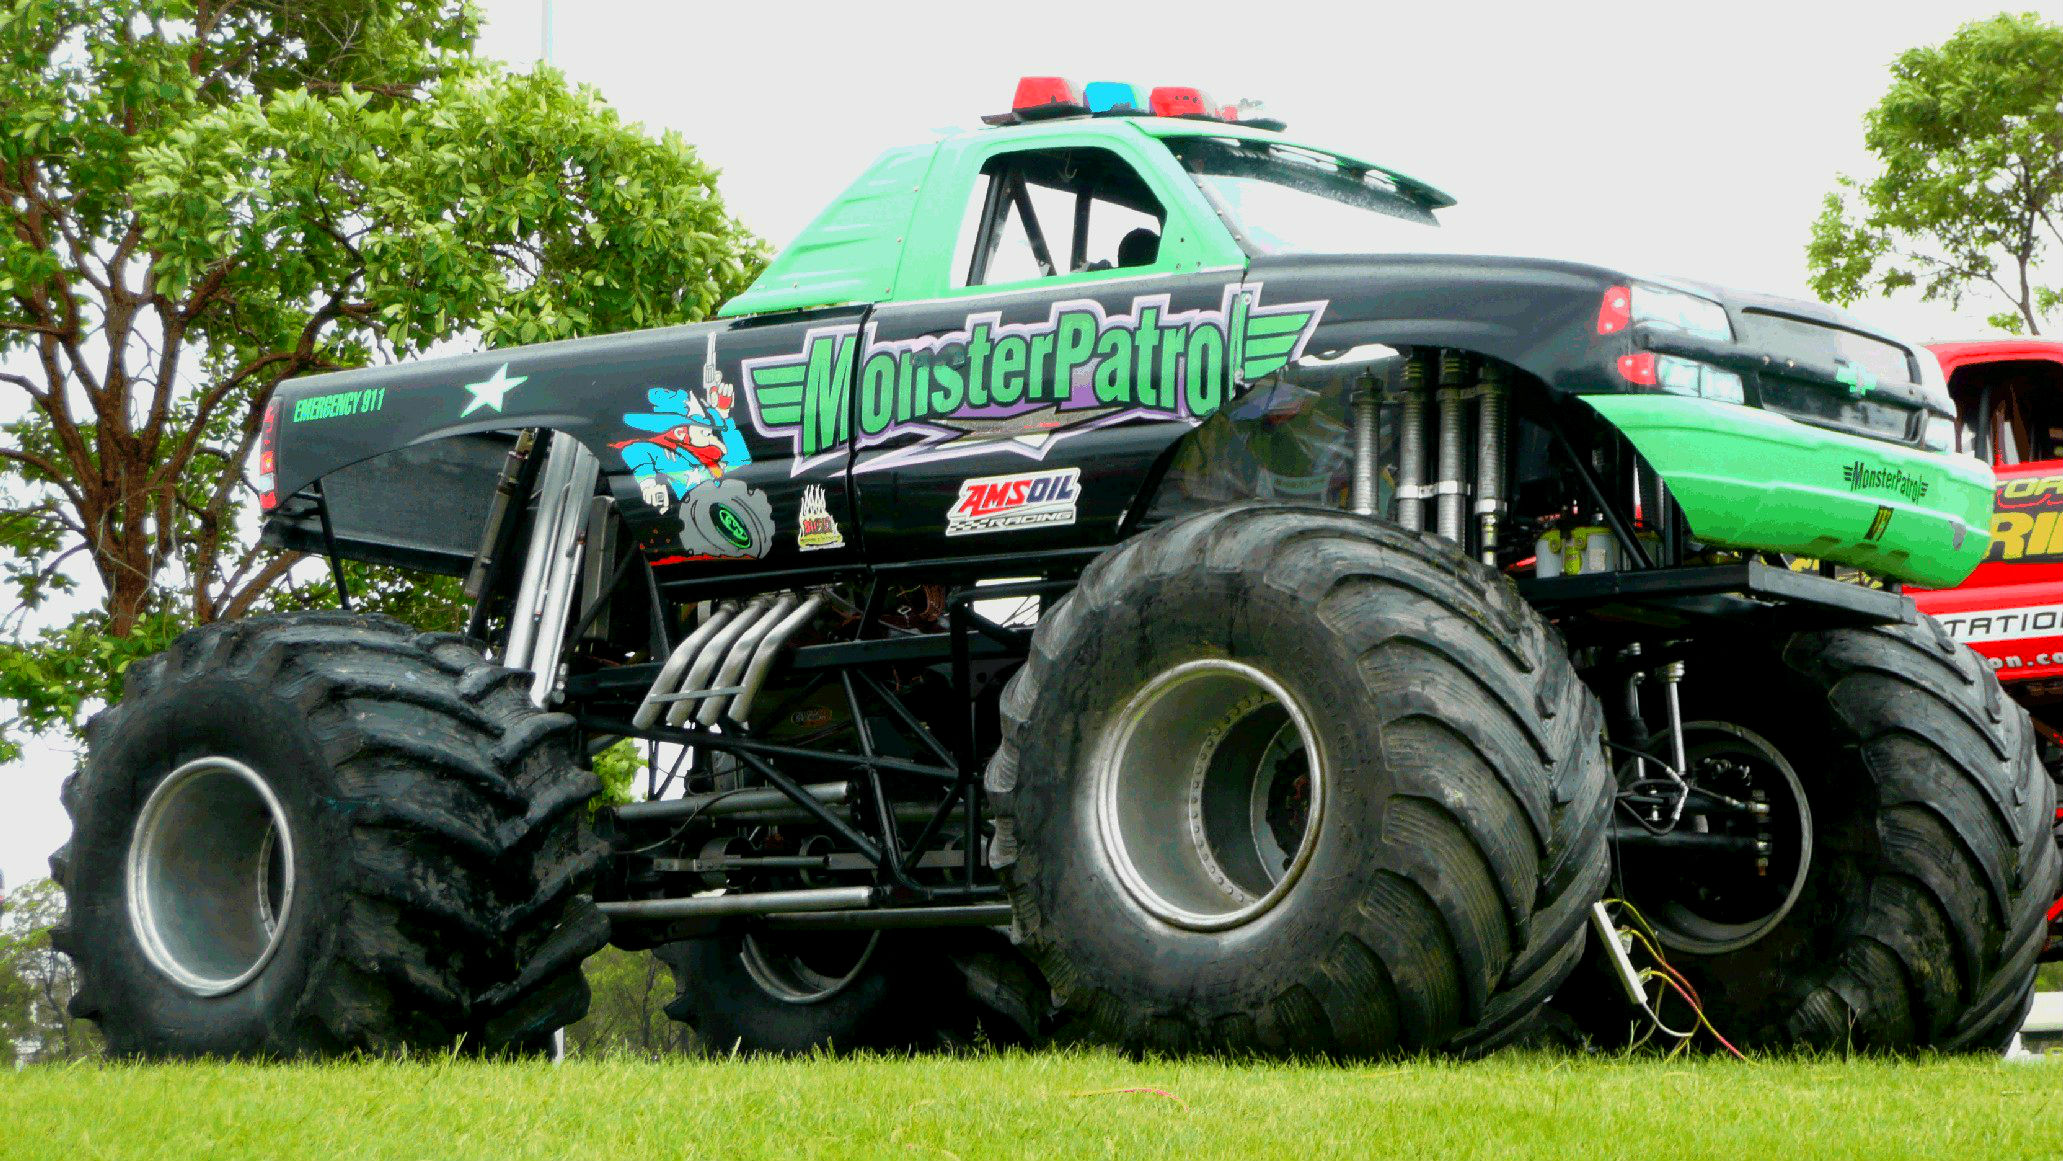 wallpapers of monster trucks wallpapersafari. Black Bedroom Furniture Sets. Home Design Ideas